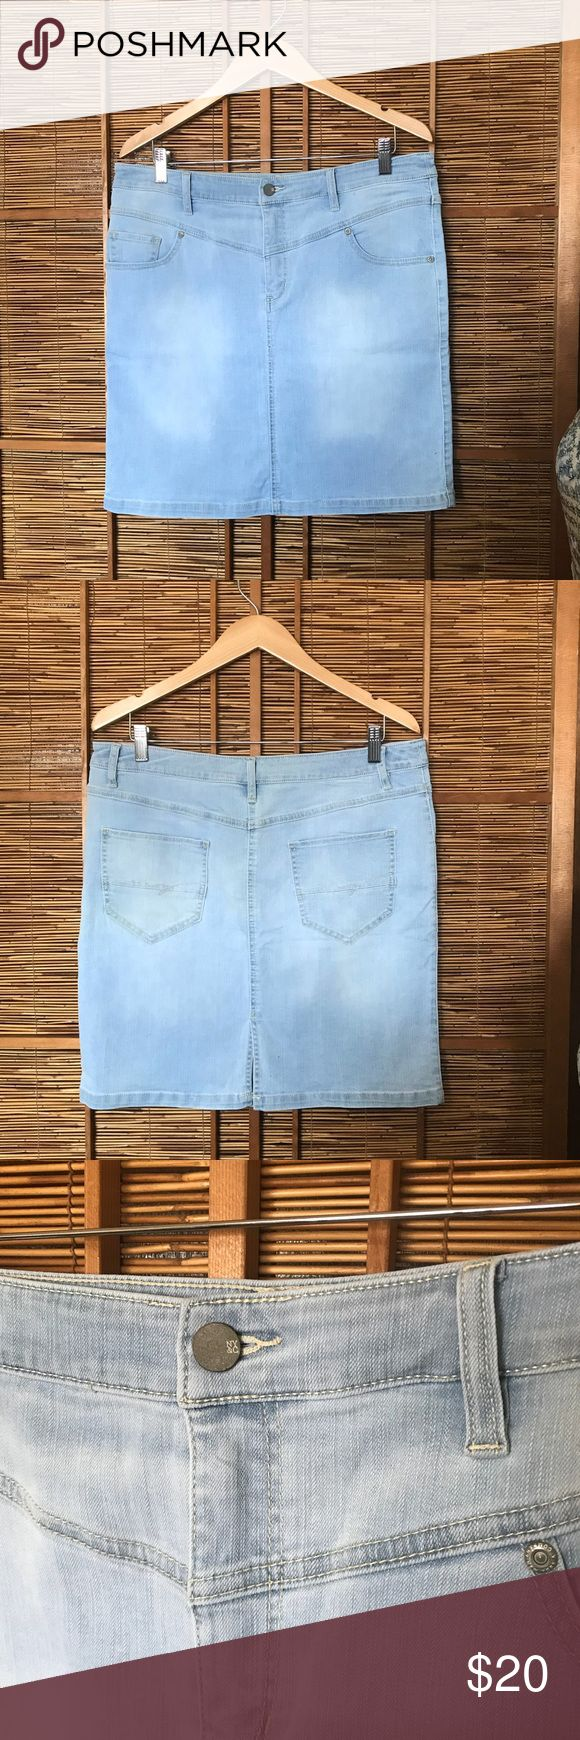 NY & C Soho jeans skirt New York & Company NWT New with tags NY&C denim mini skirt. Light wash. Size 14. Small slit in back. Flat front. Zip up.  In new condition with tags. New York & Company Skirts Mini